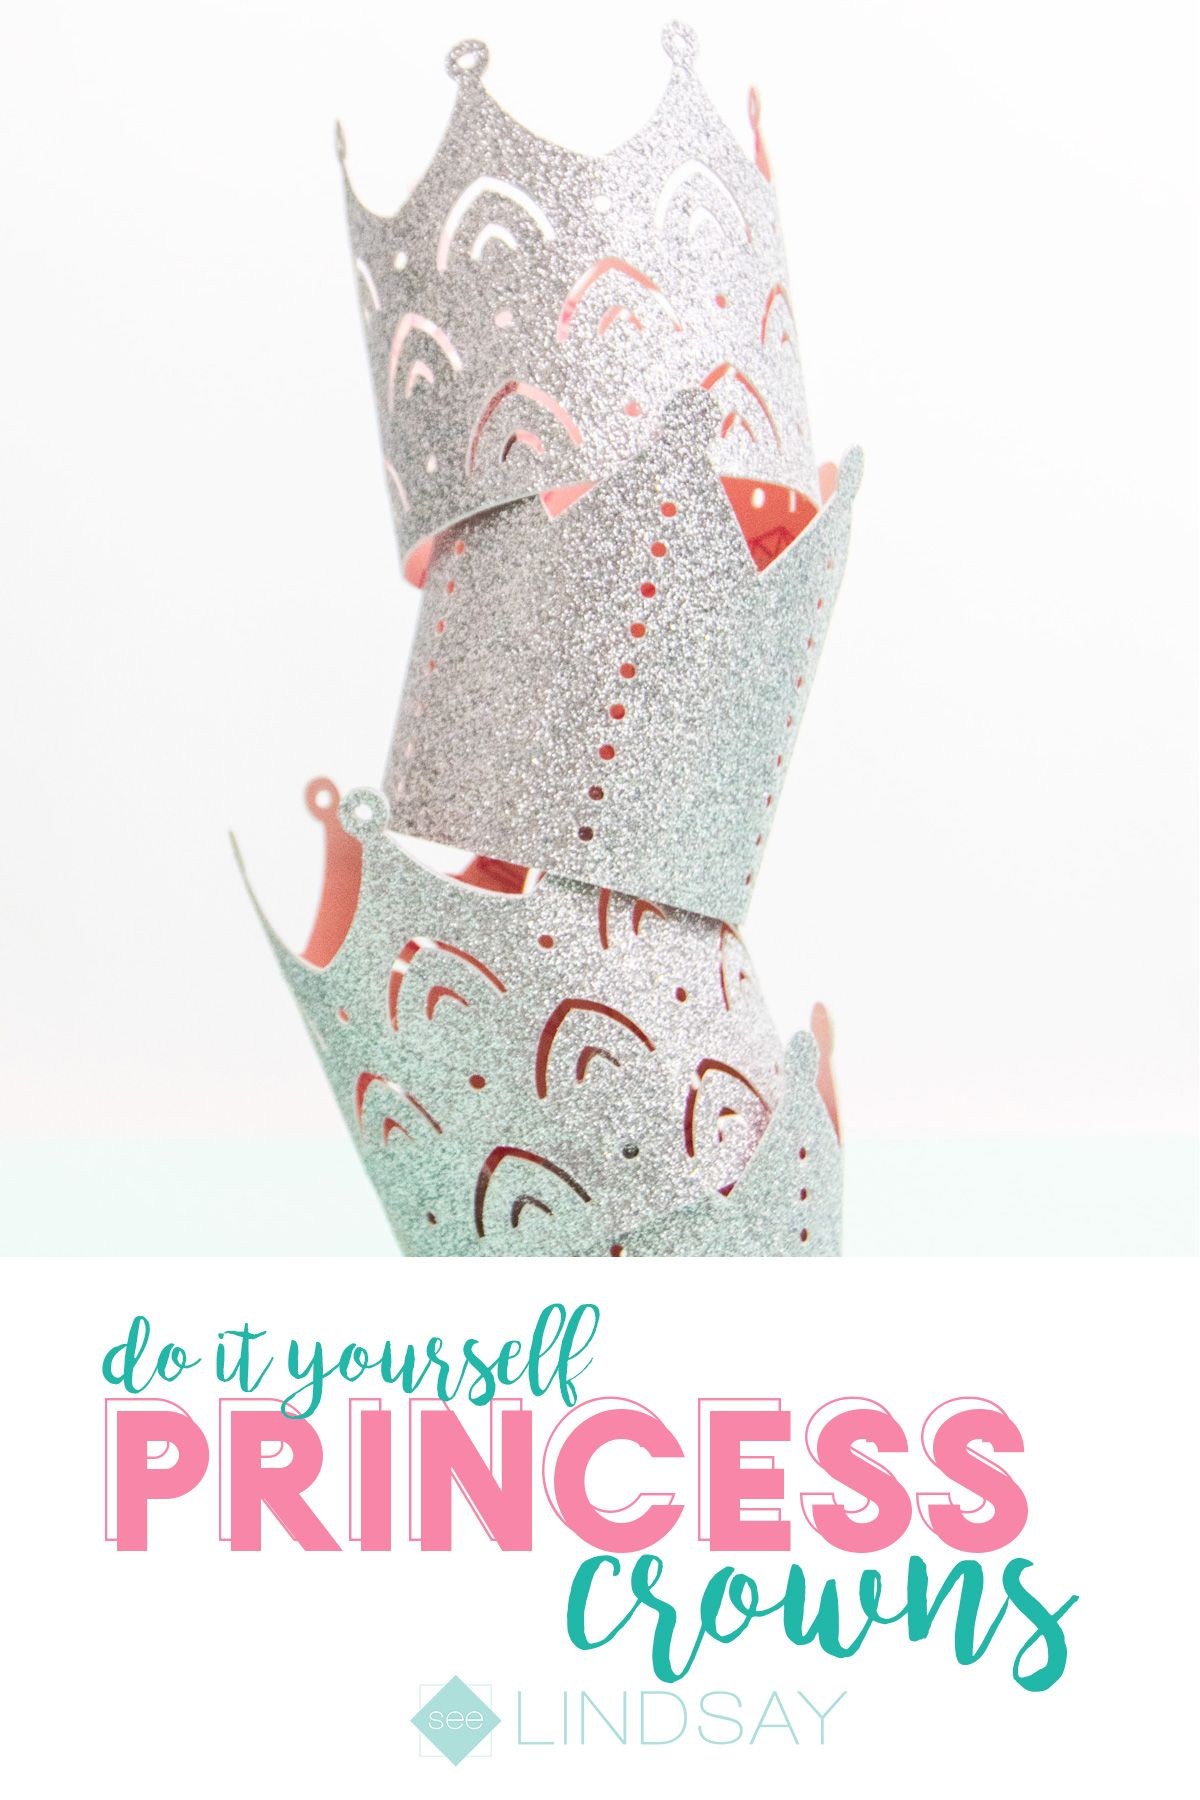 Create The Perfect Princess Party Crowns By Using Glitter Cardstock And Coordinating Patterned Paper Get All The Princess Diy Crown For Kids Cardstock Crafts